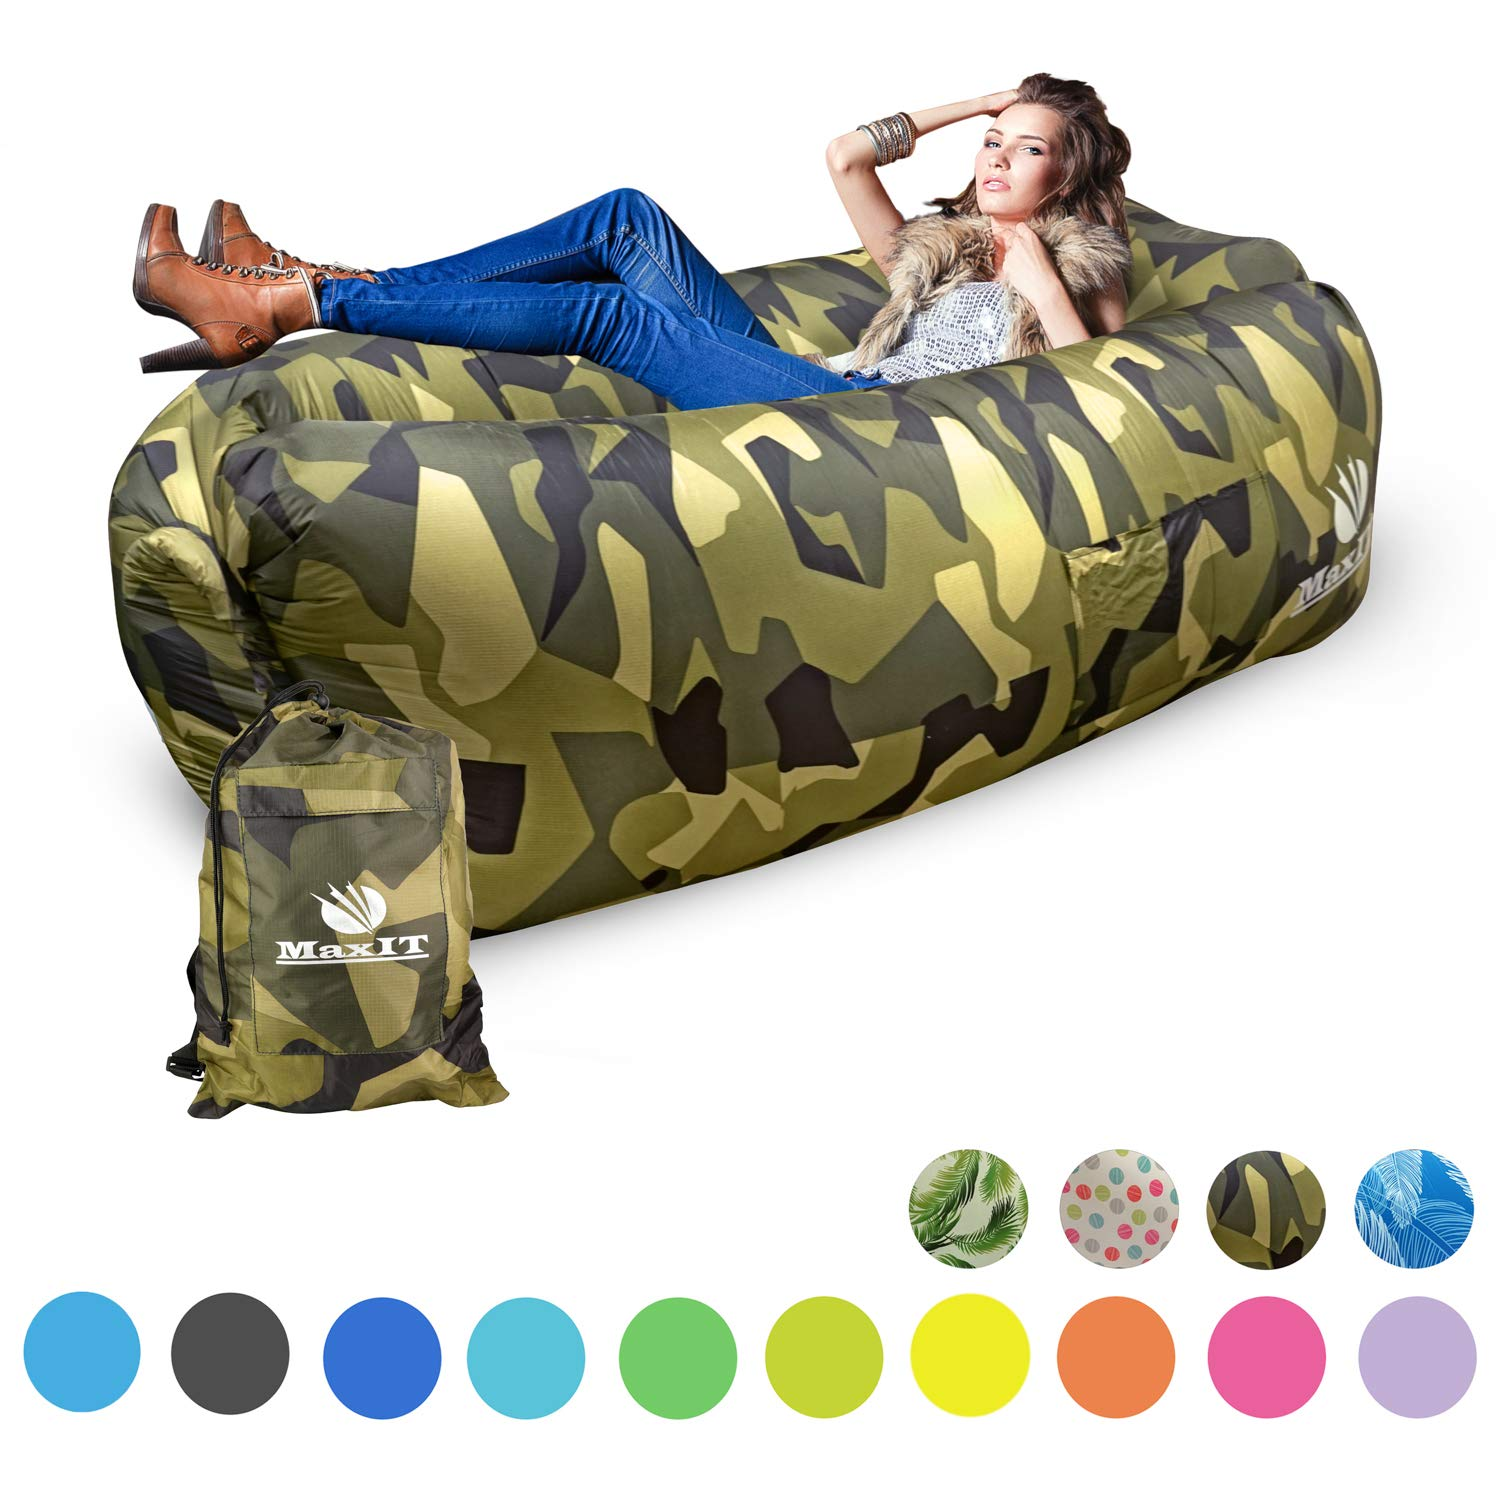 MaxIT Inflatable Hammock Sofa | Pool Floating Air Lounger Bed for Adults or Kids, Perfect for Tanning or Relaxing in The Sun | Easy to Inflate and Puncture Resistant (Camouflage) by MAXIT